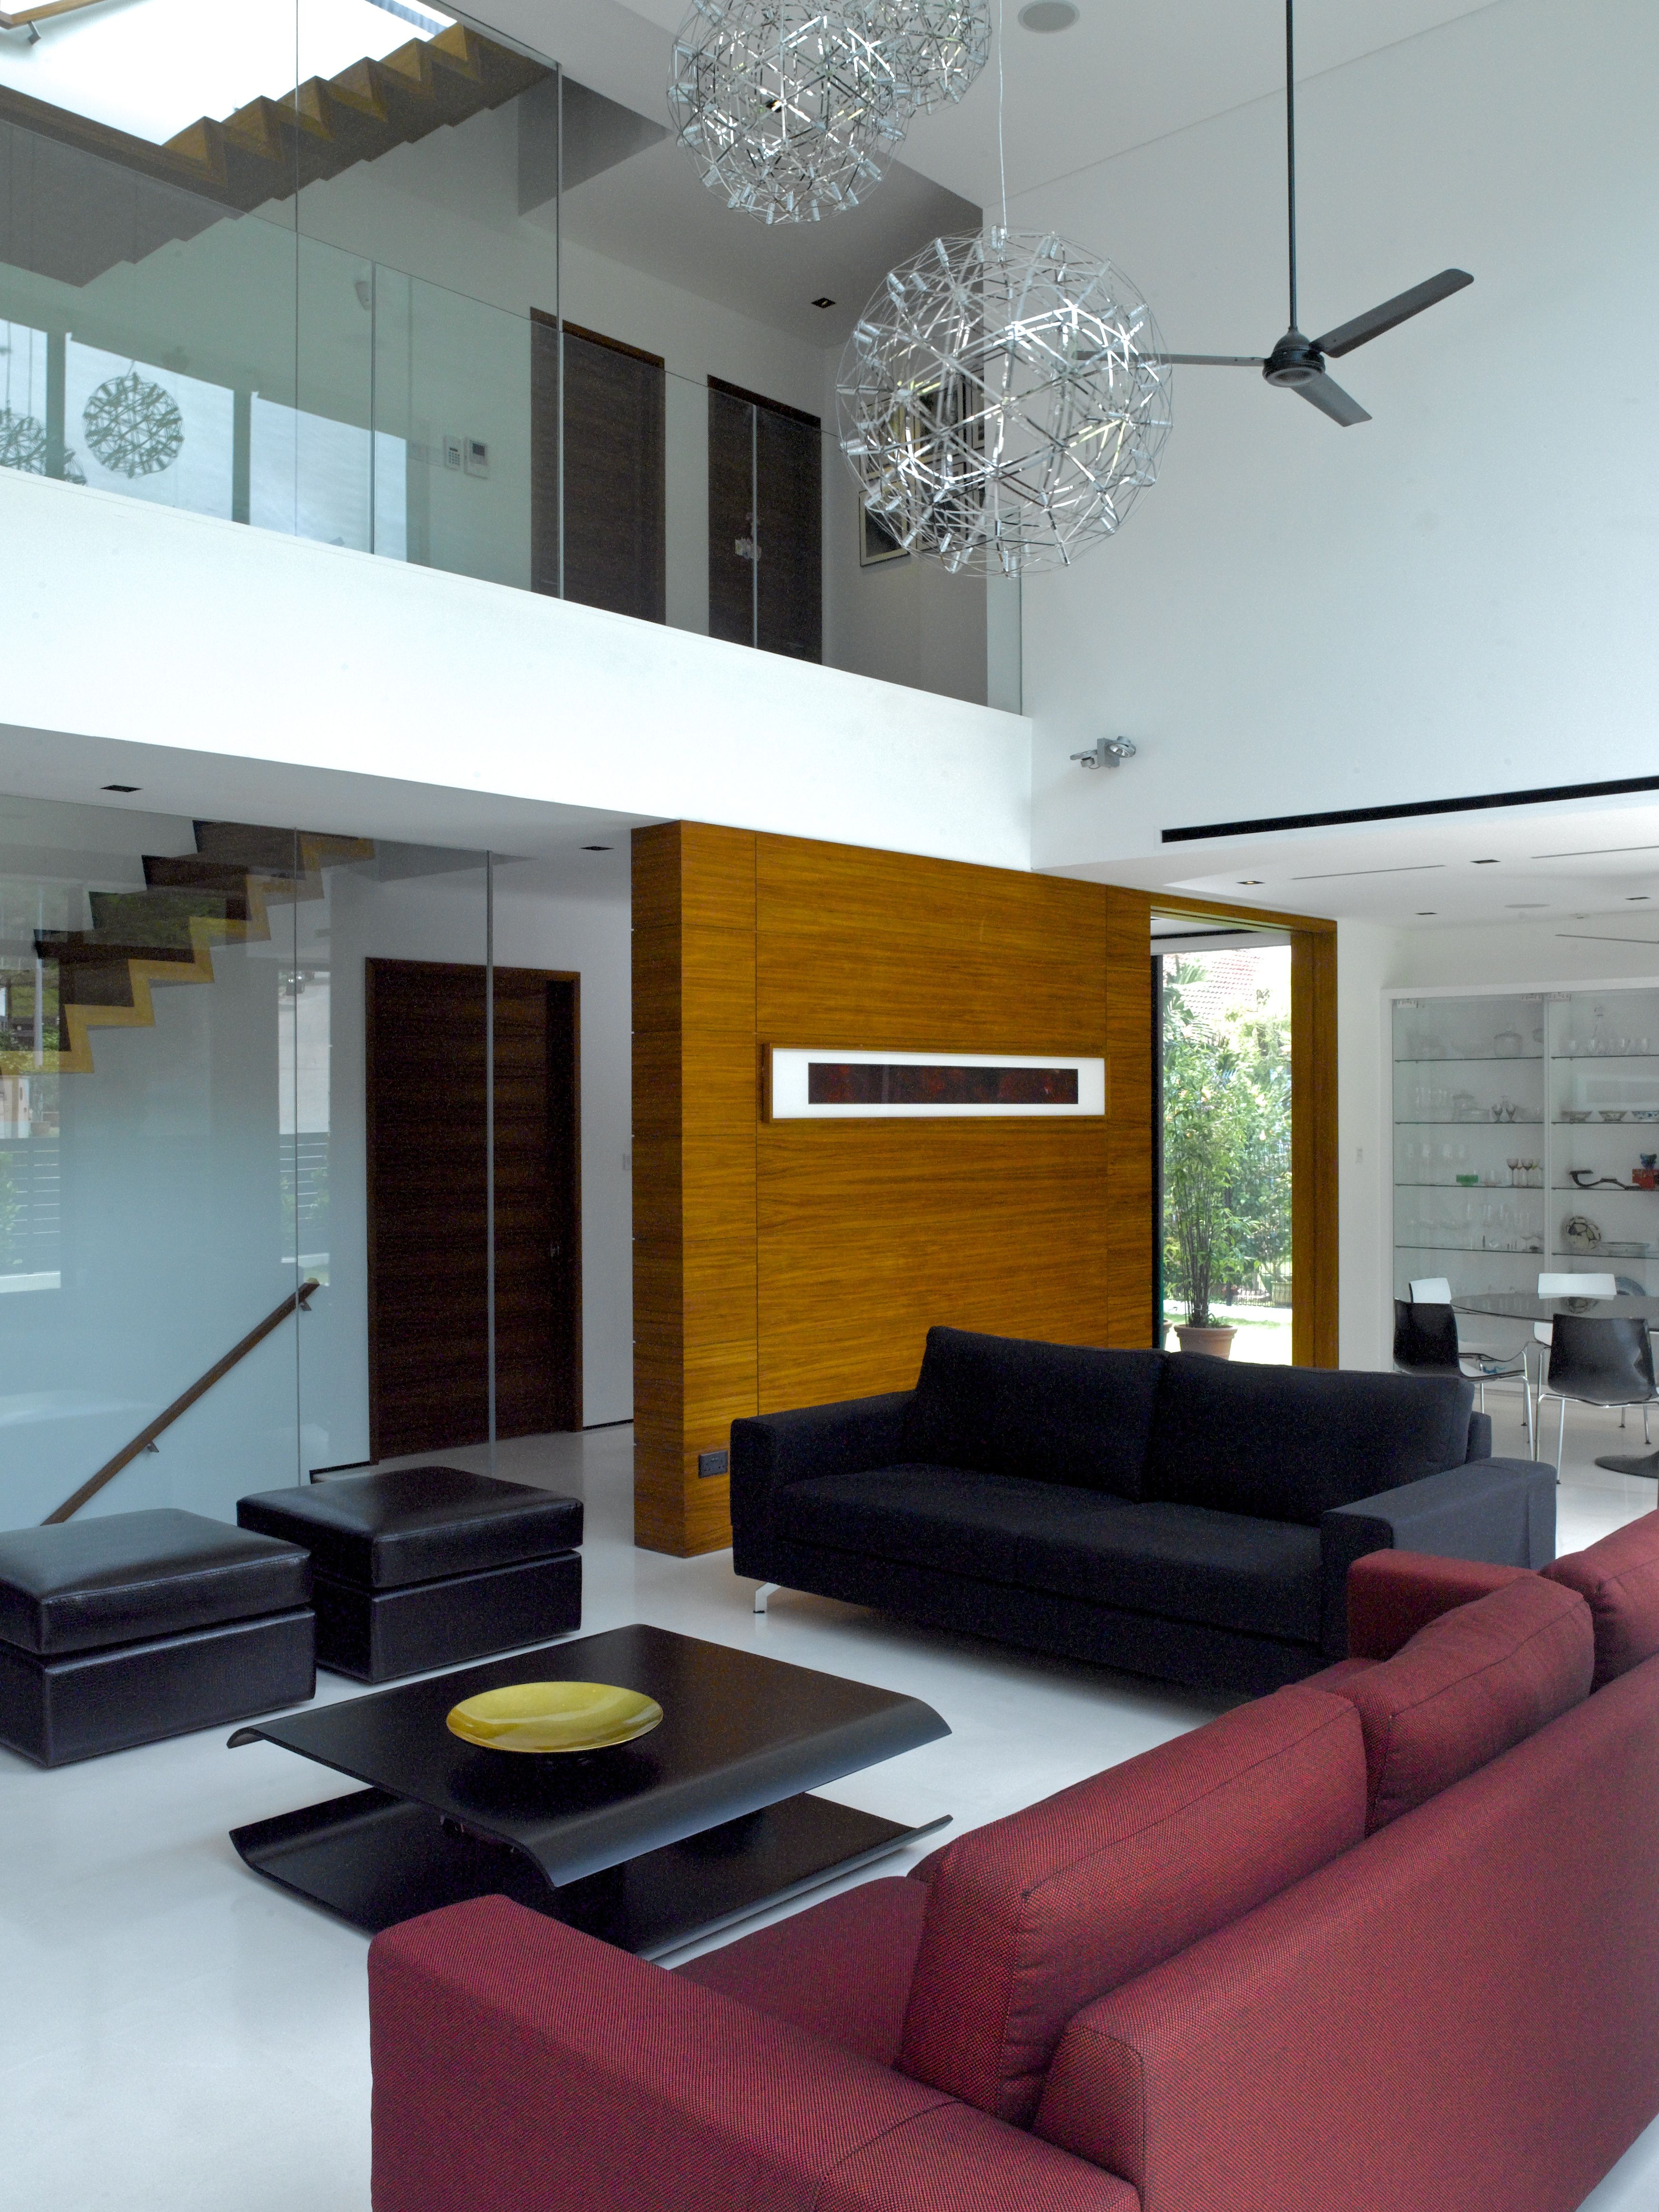 Living room with double volume space home decor pinterest for Double living room ideas